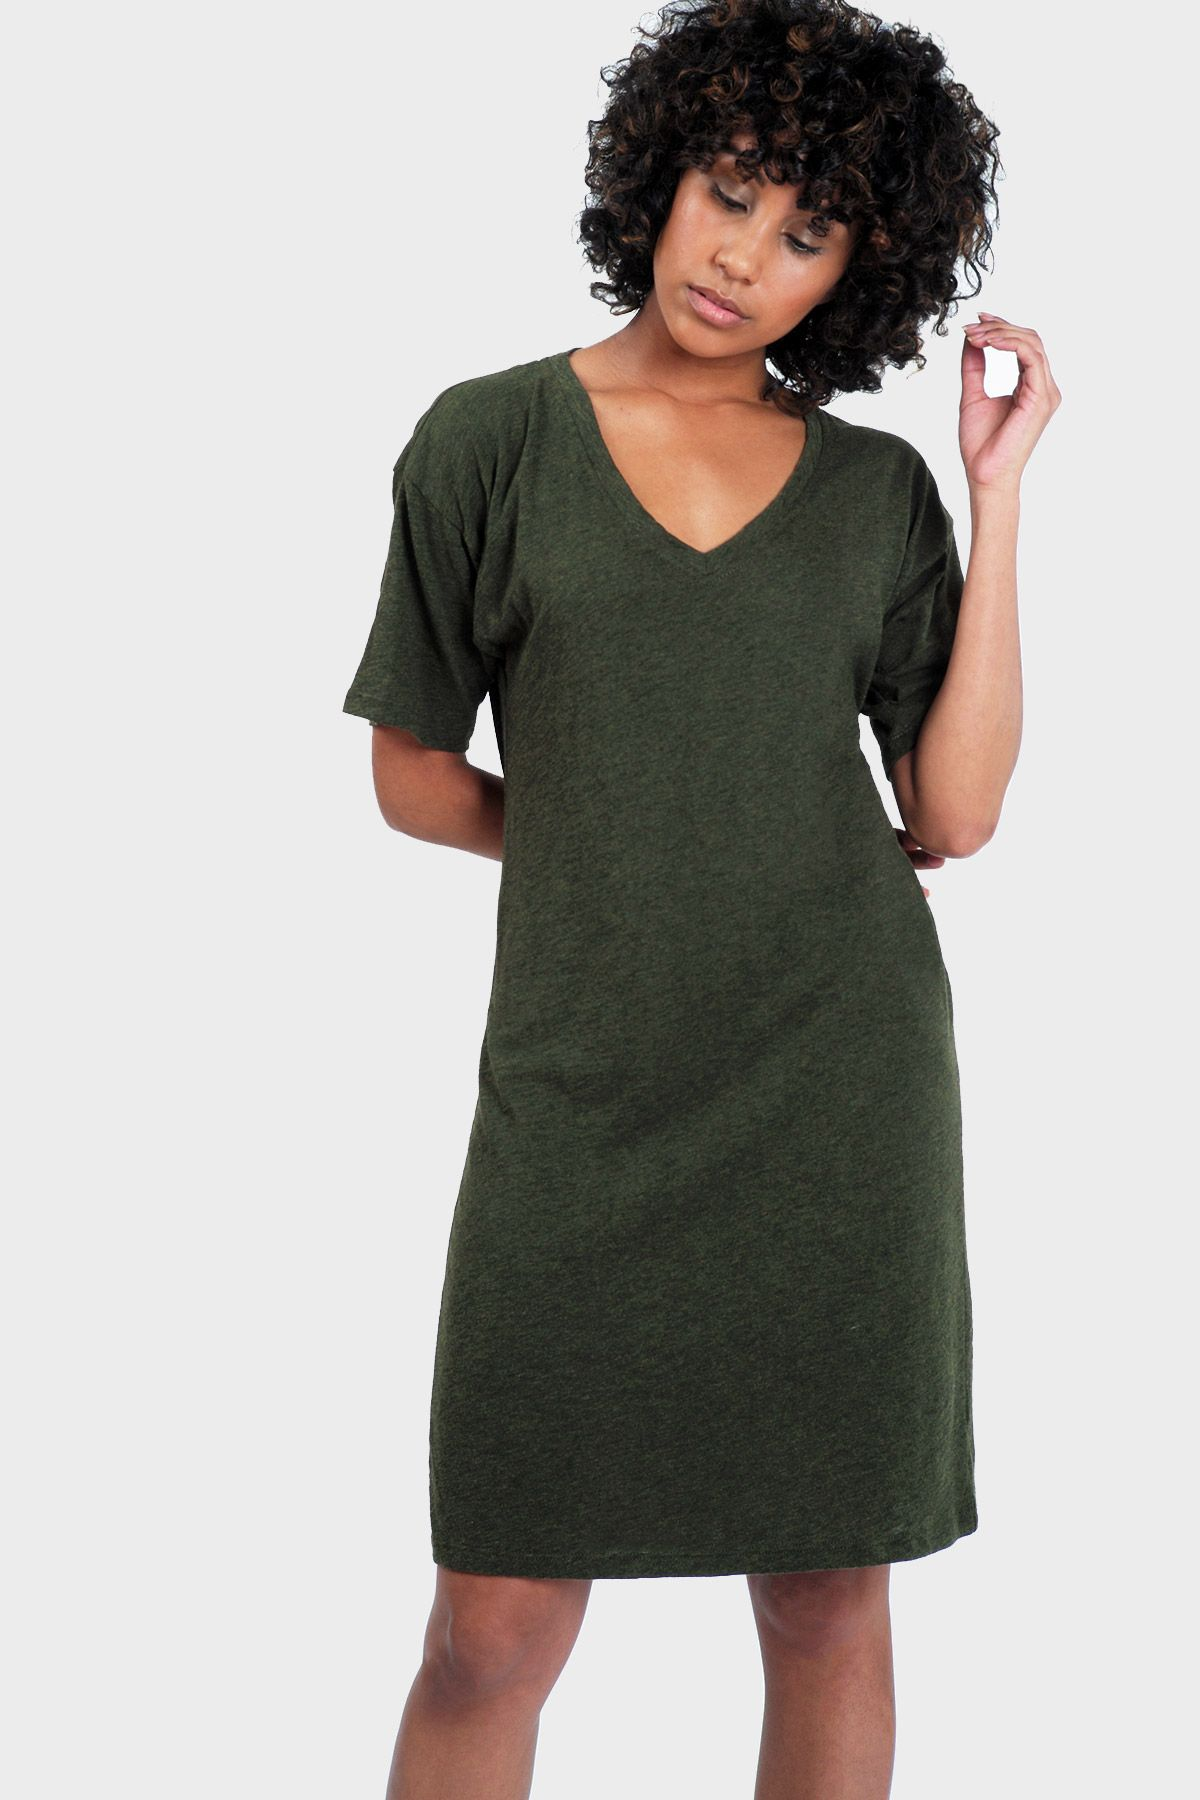 f28c0c6bfa Mika T-Shirt Dress in Organic Cotton  Bamboo Rayon •  337brand   joingreenmoves  boston  popup  retail  madeinnyc  sustainablefashion   ethicalfashion ...